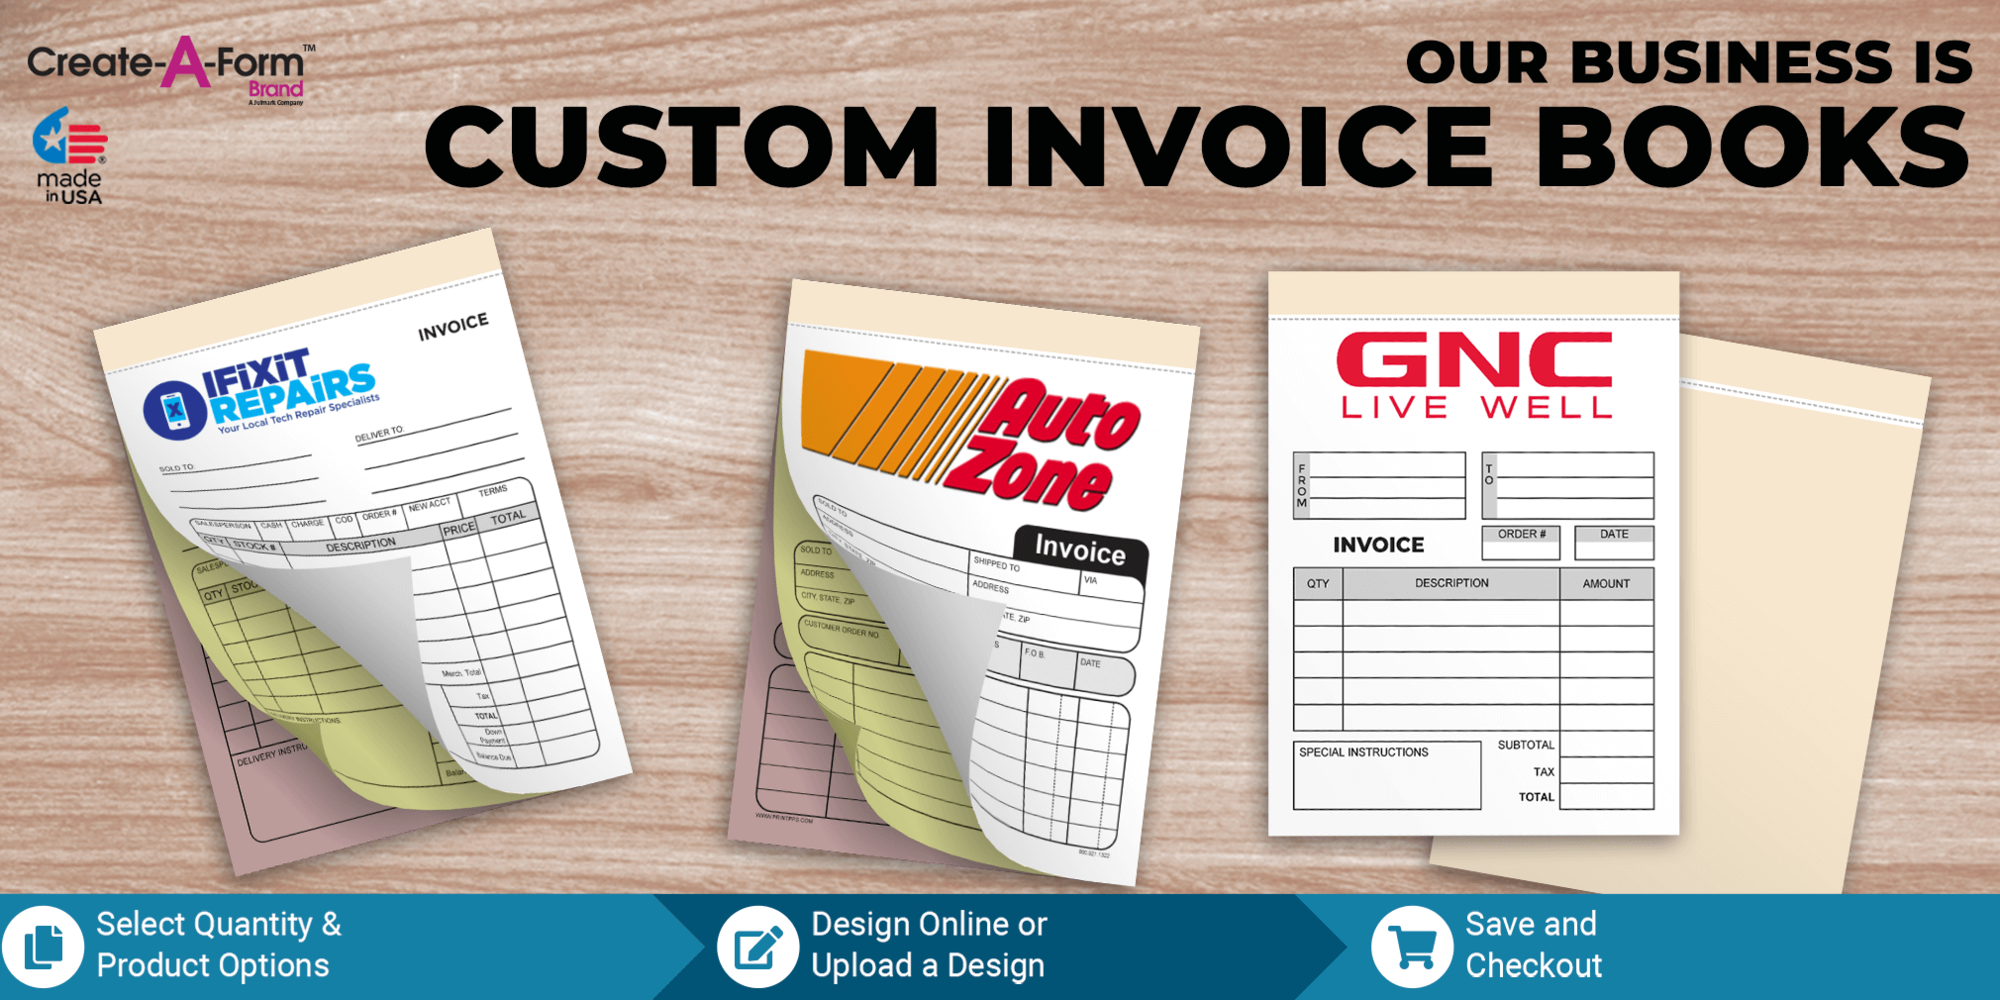 https://printpps.com/images/products_gallery_images/Banner_4_25x5_5NCR_Invoice_ProdFeat_Cover.png